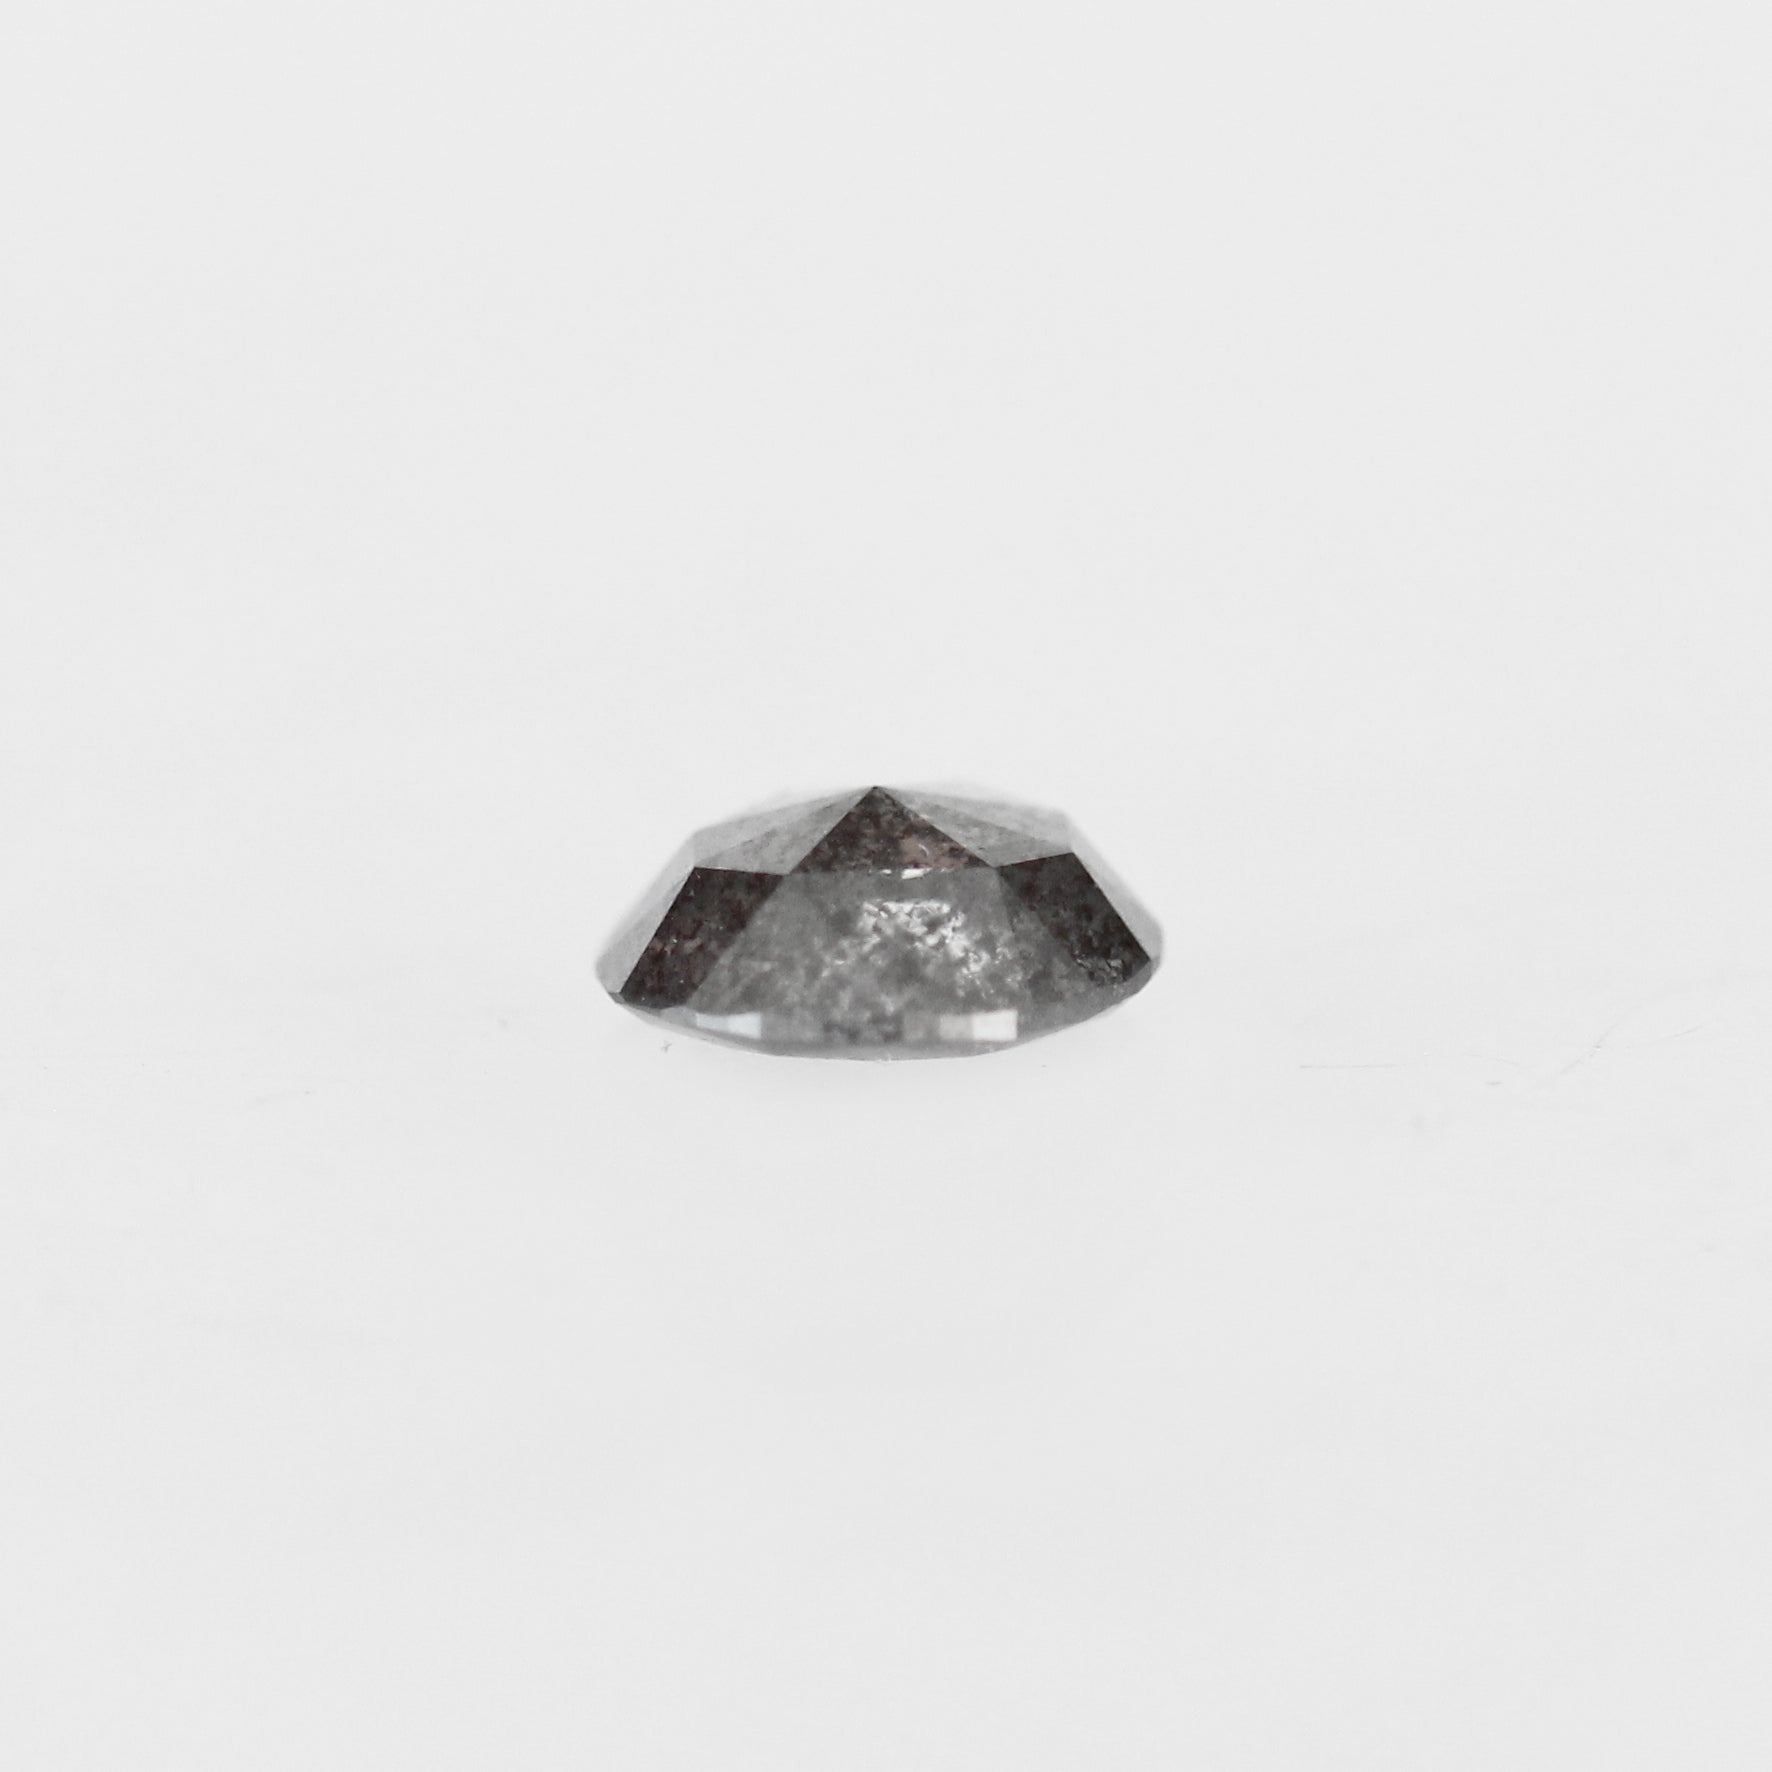 .48 Carat Oval Diamond-Inventory Code ORB48 - Celestial Diamonds ® by Midwinter Co.